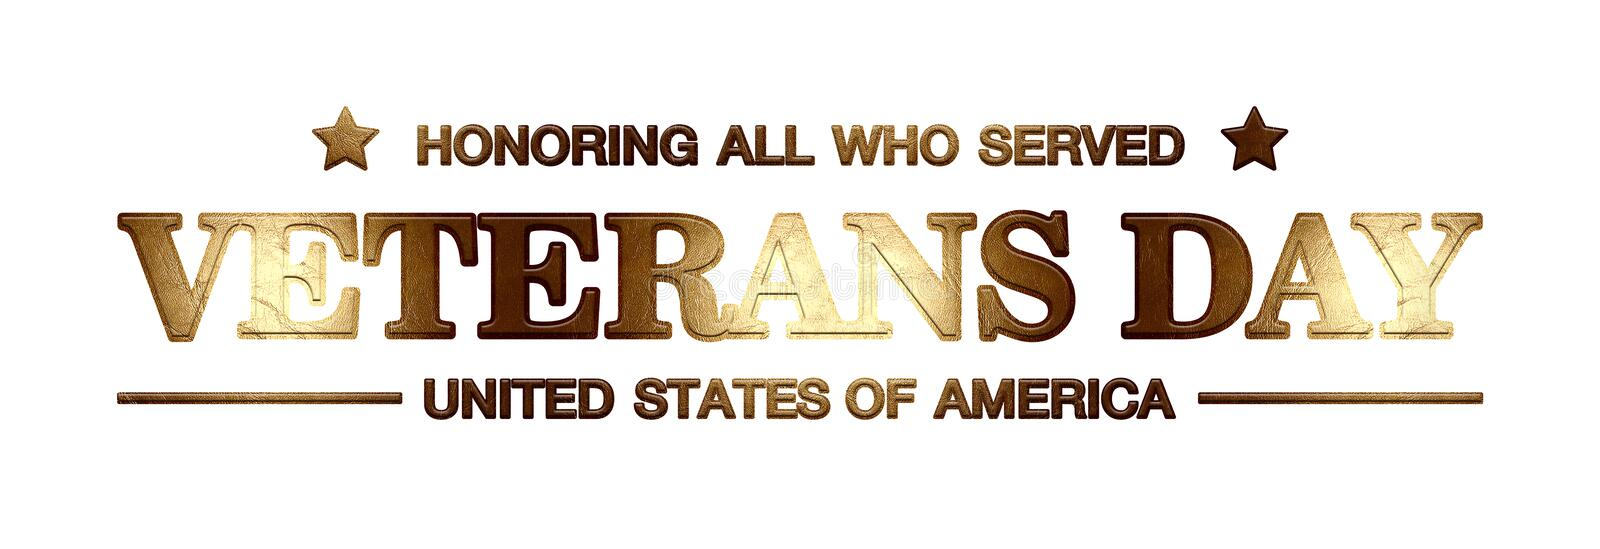 Logo Veterans Day. Veterans Day united states of america